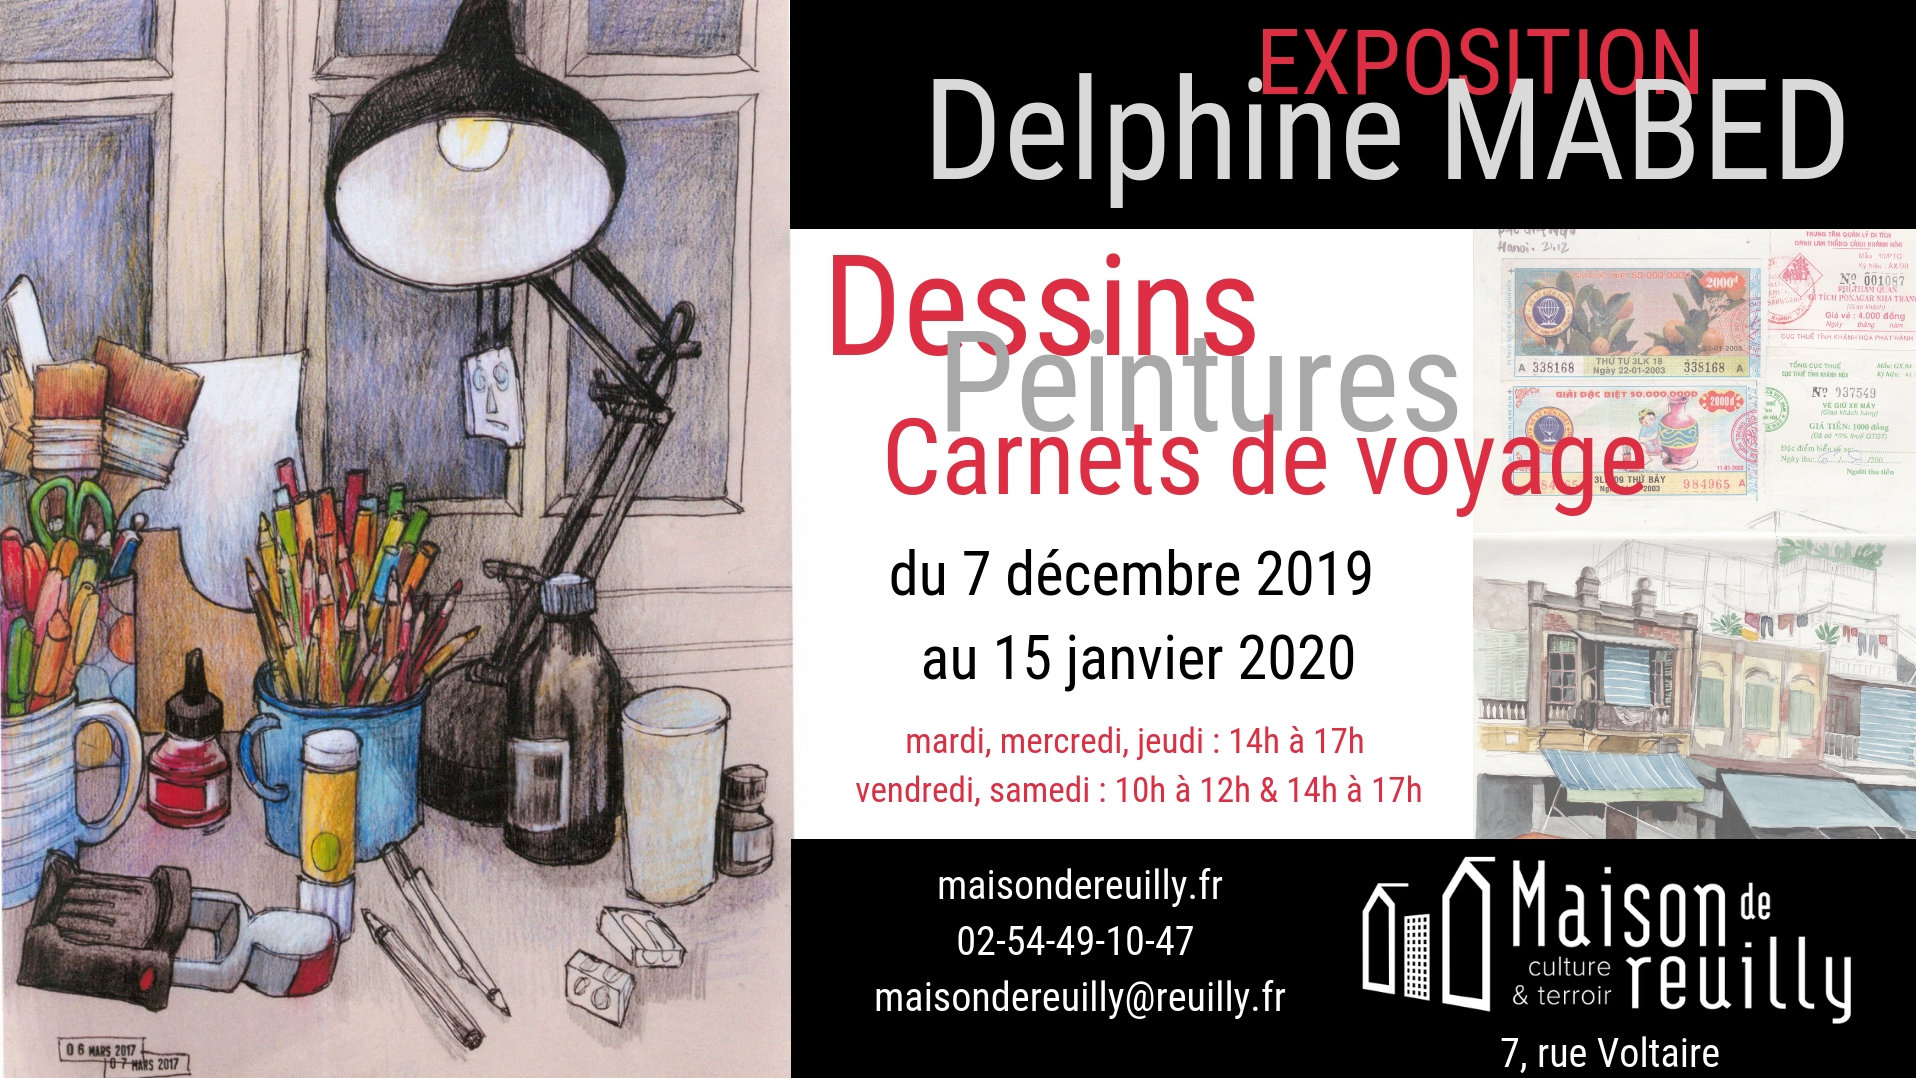 Affiche Mabed Delphine décembre 2019 reuilly